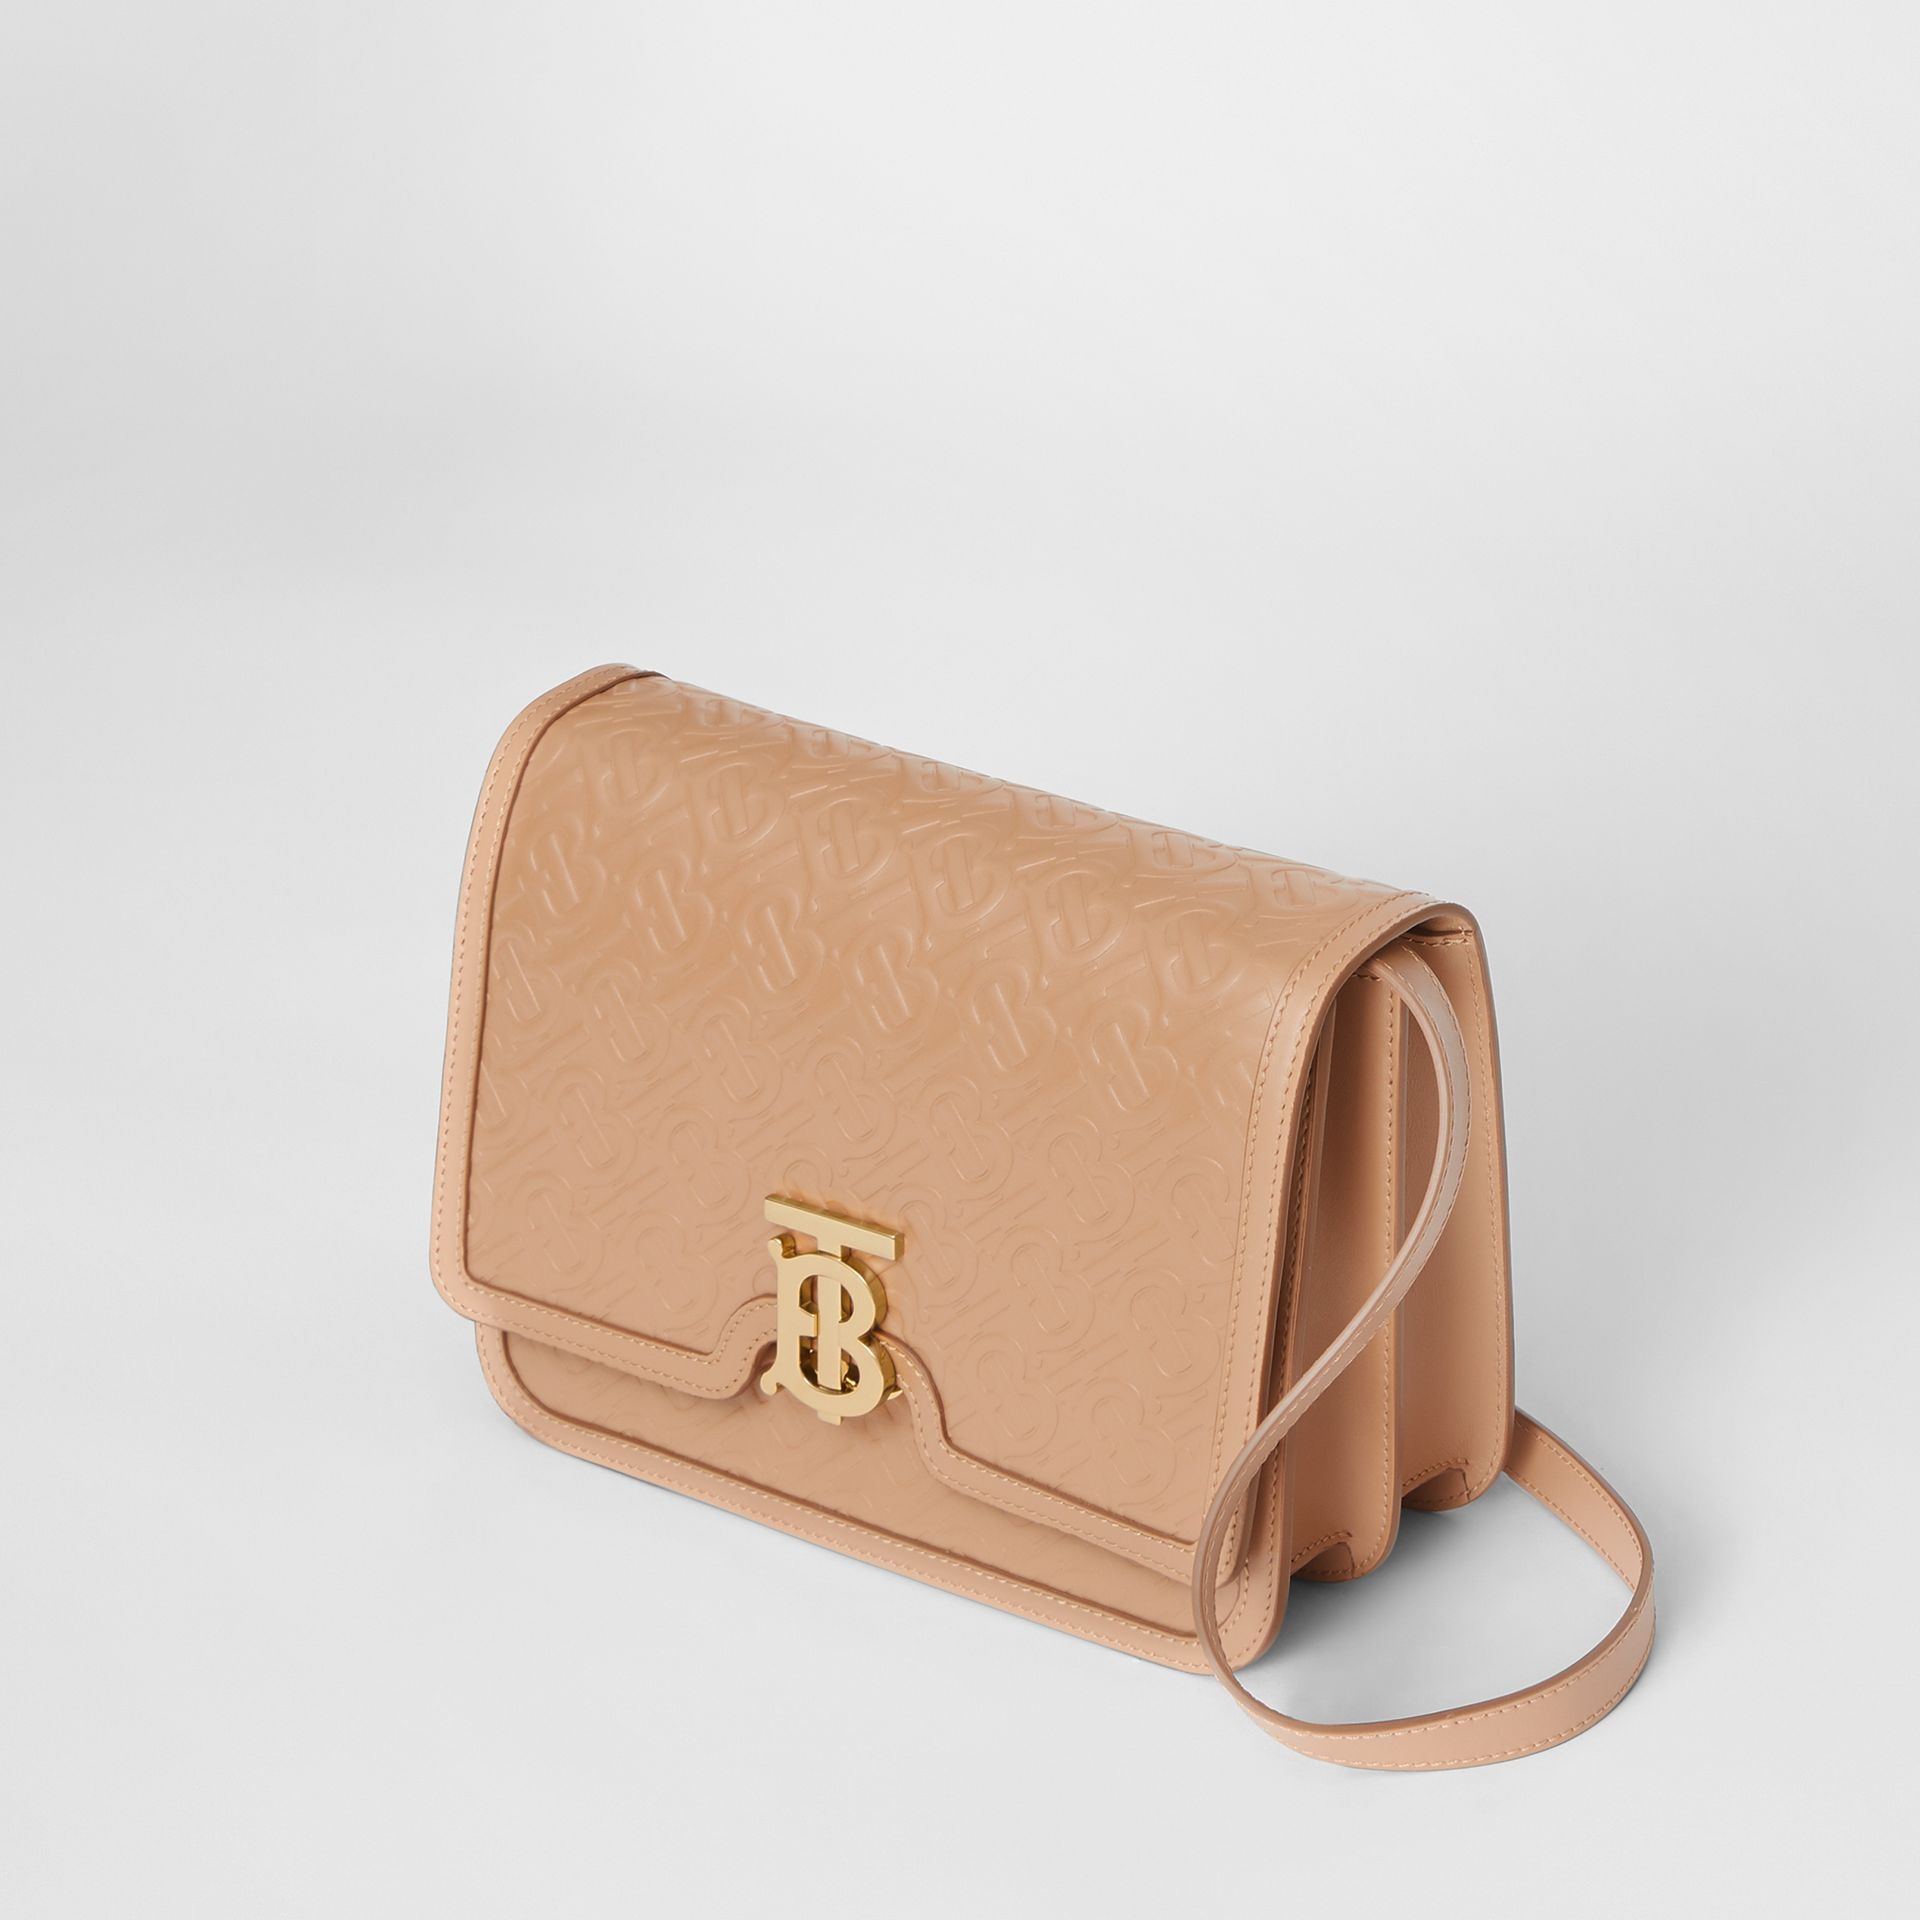 Medium Monogram Leather TB Bag in Light Camel - Women | Burberry - gallery image 3